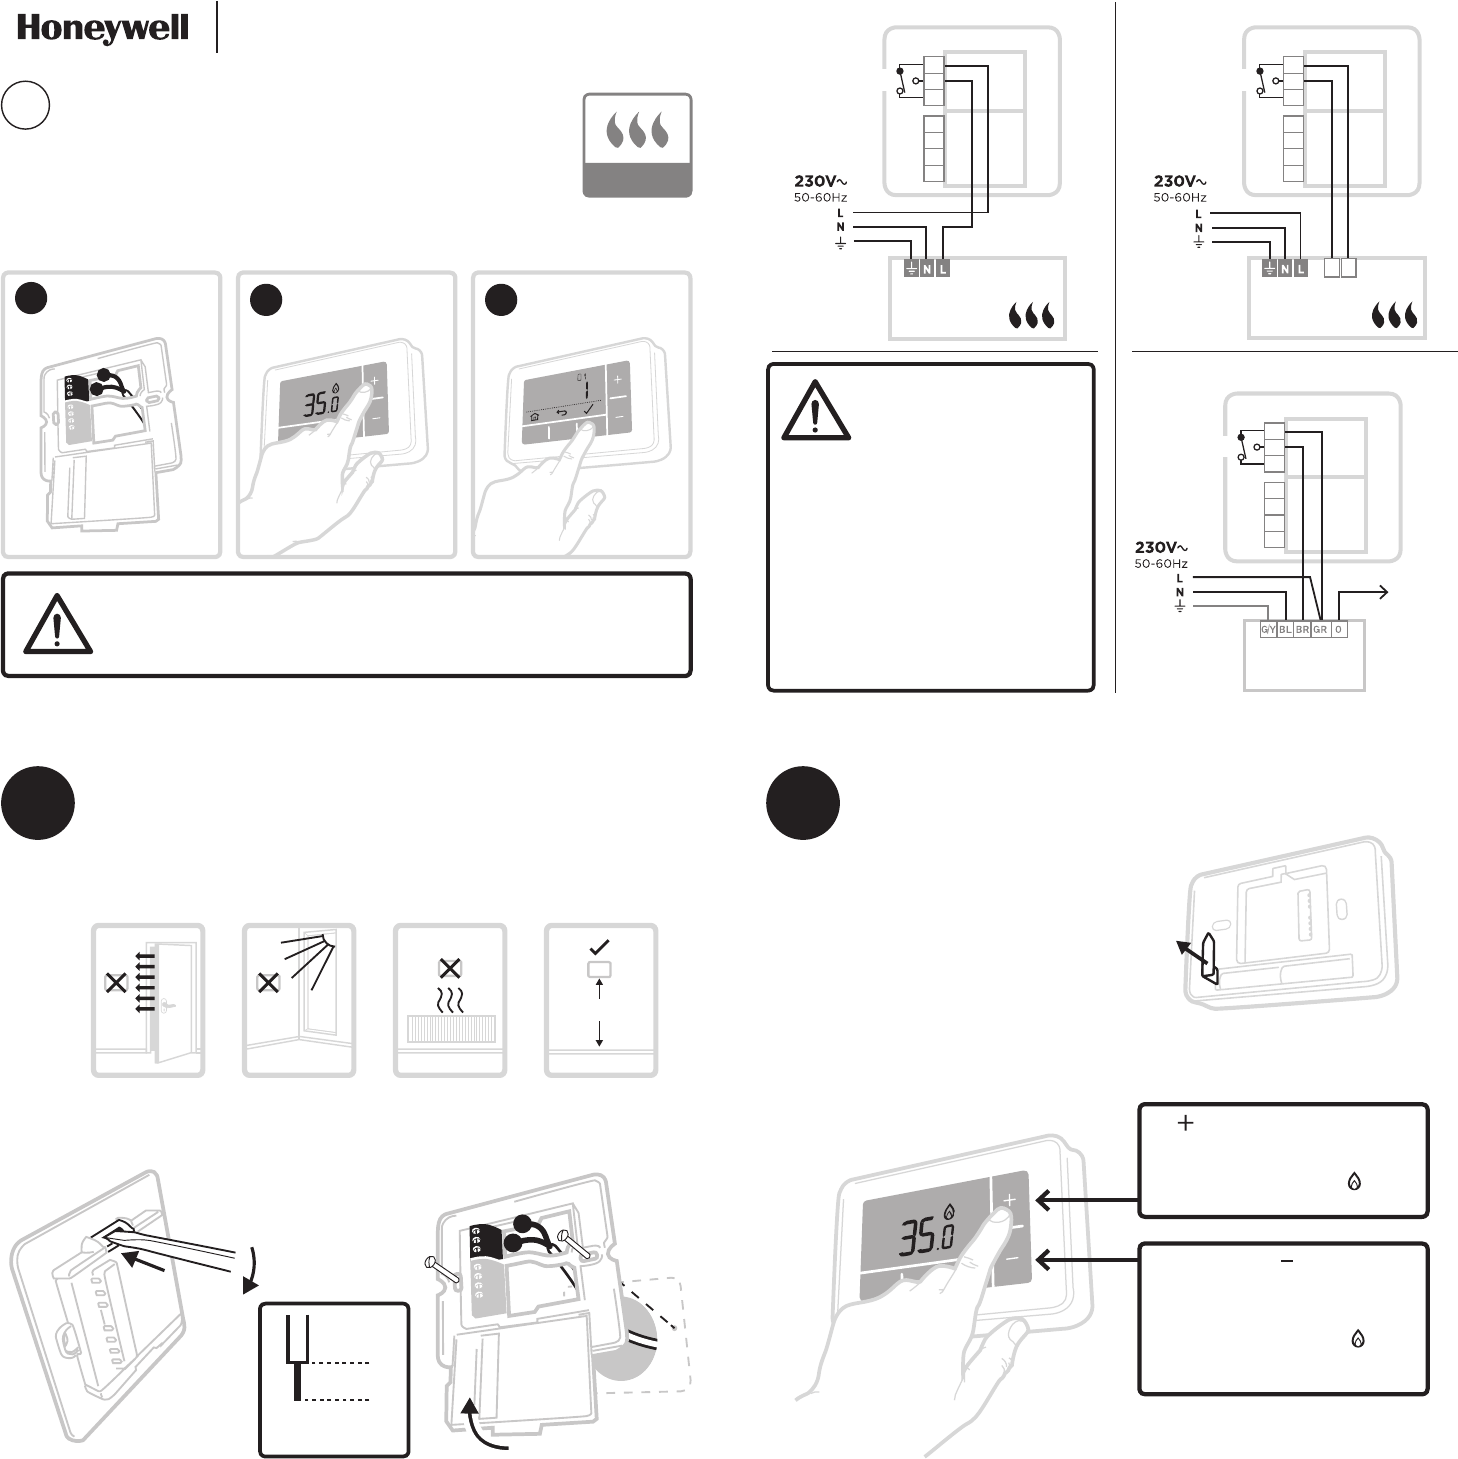 Manual Honeywell T4 (page 1 of 2) (German)